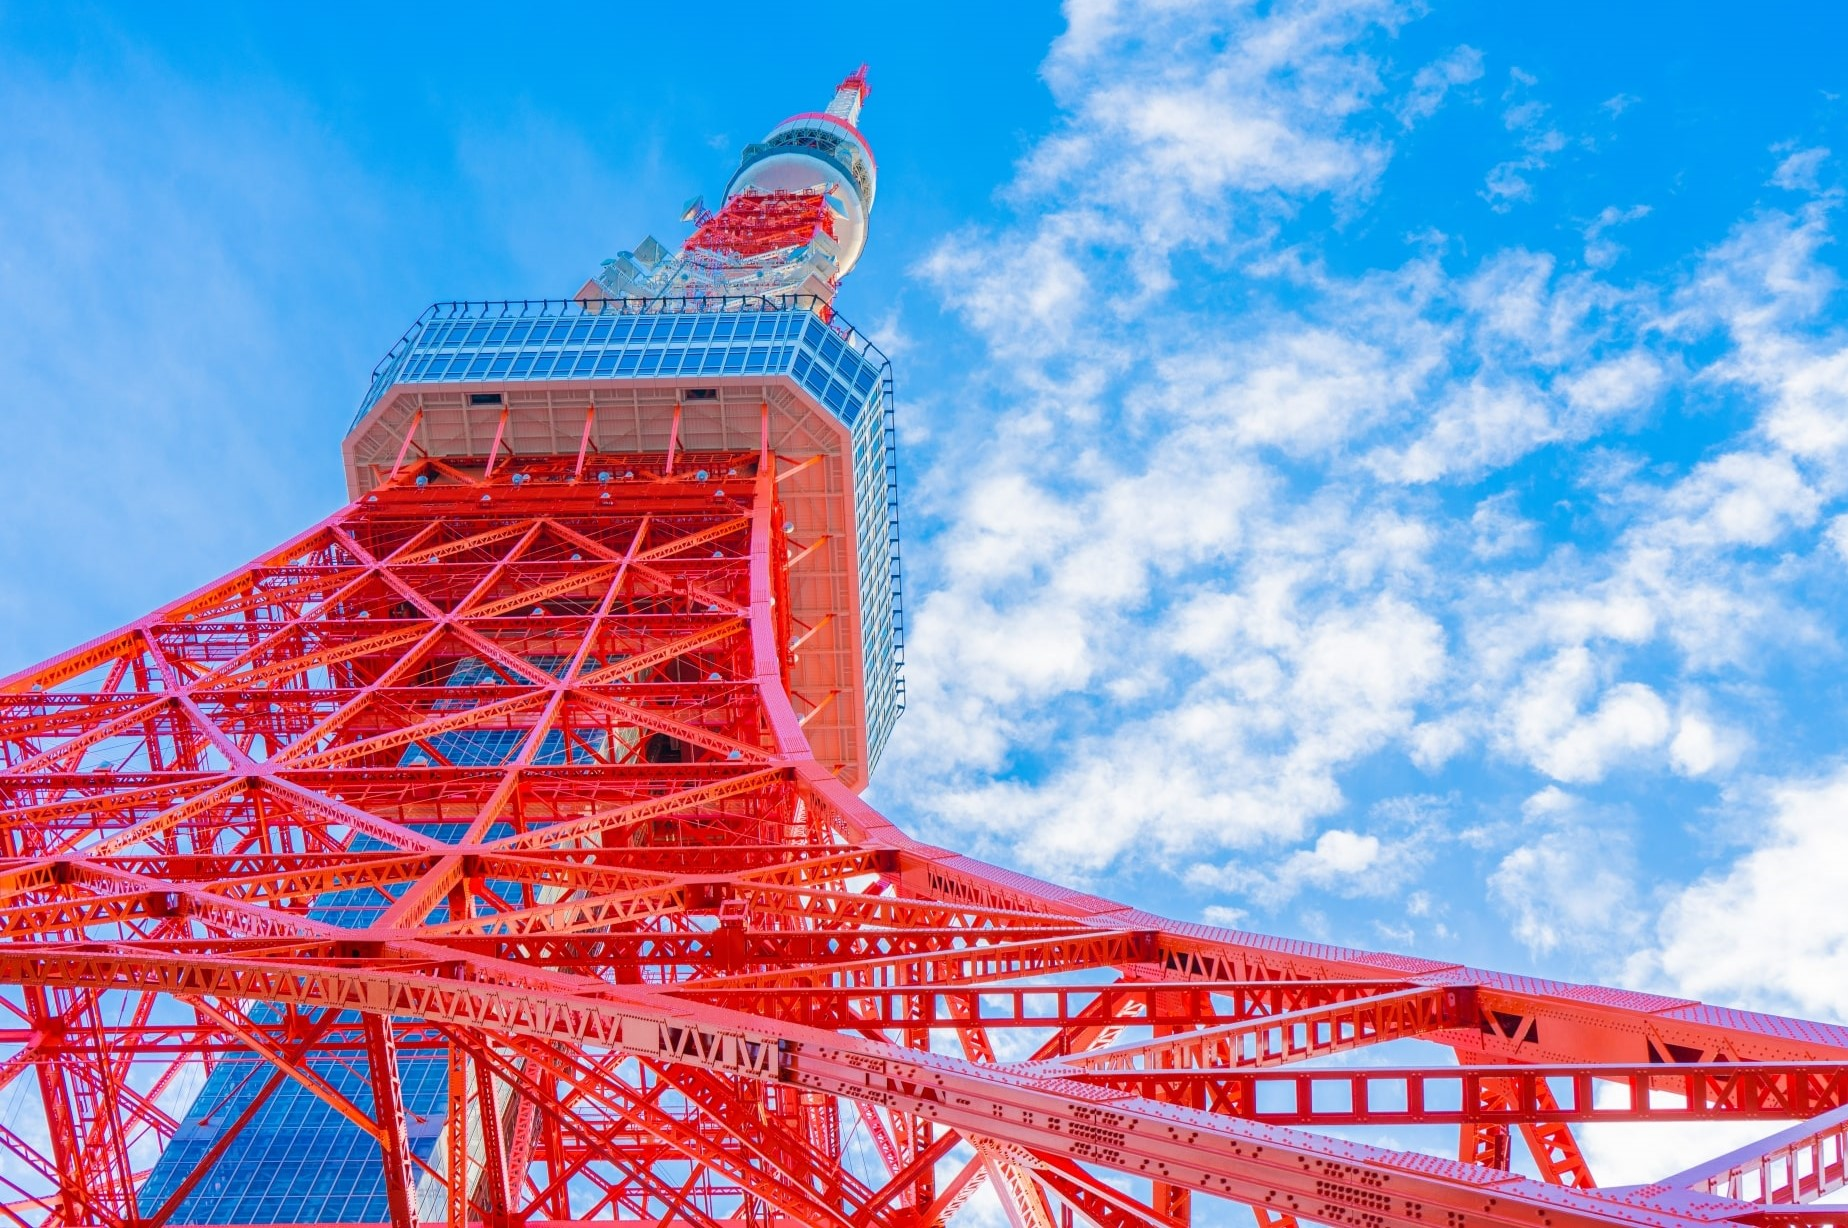 Tokyo Tower rising high up to the blue sky